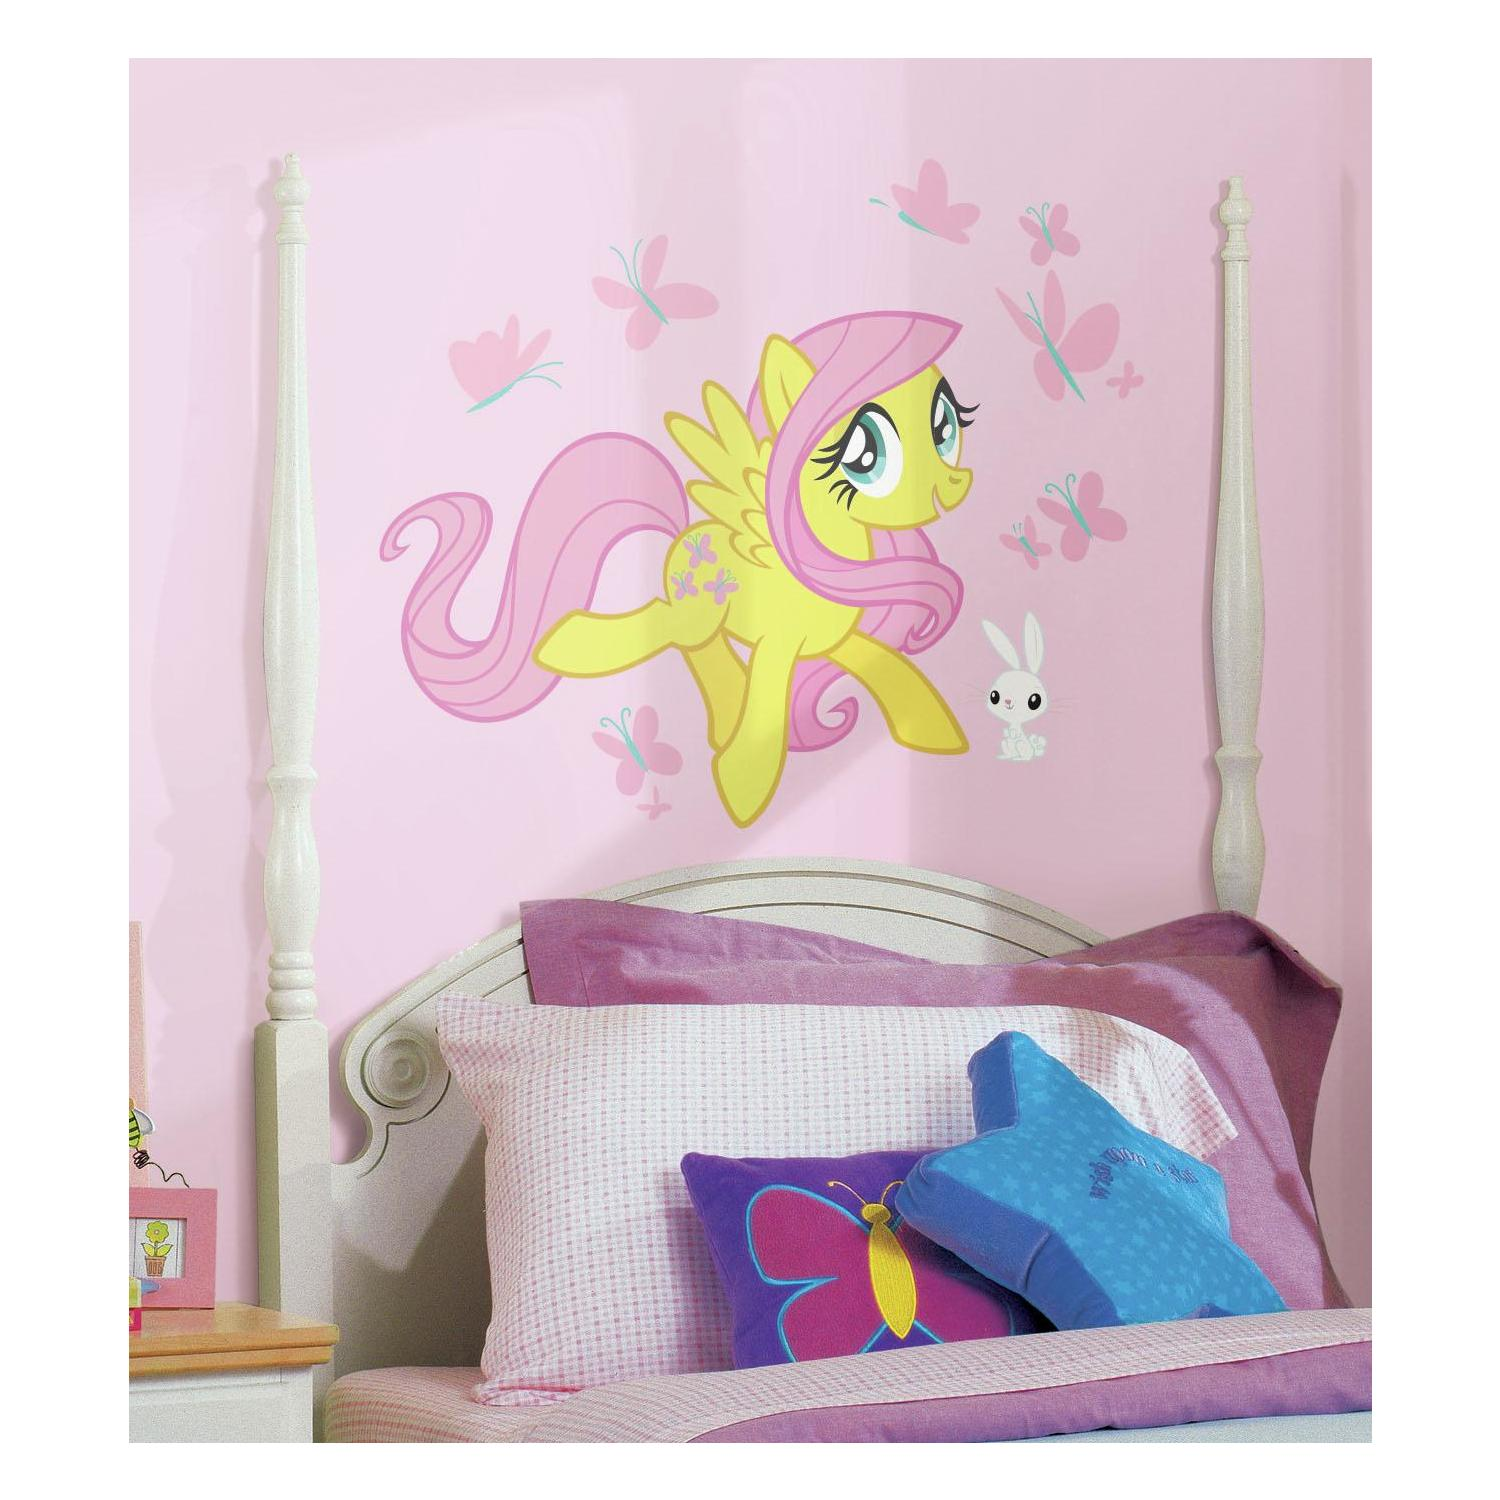 roommates decor my little pony fluttershy giant wall decals girls room stickers. Black Bedroom Furniture Sets. Home Design Ideas